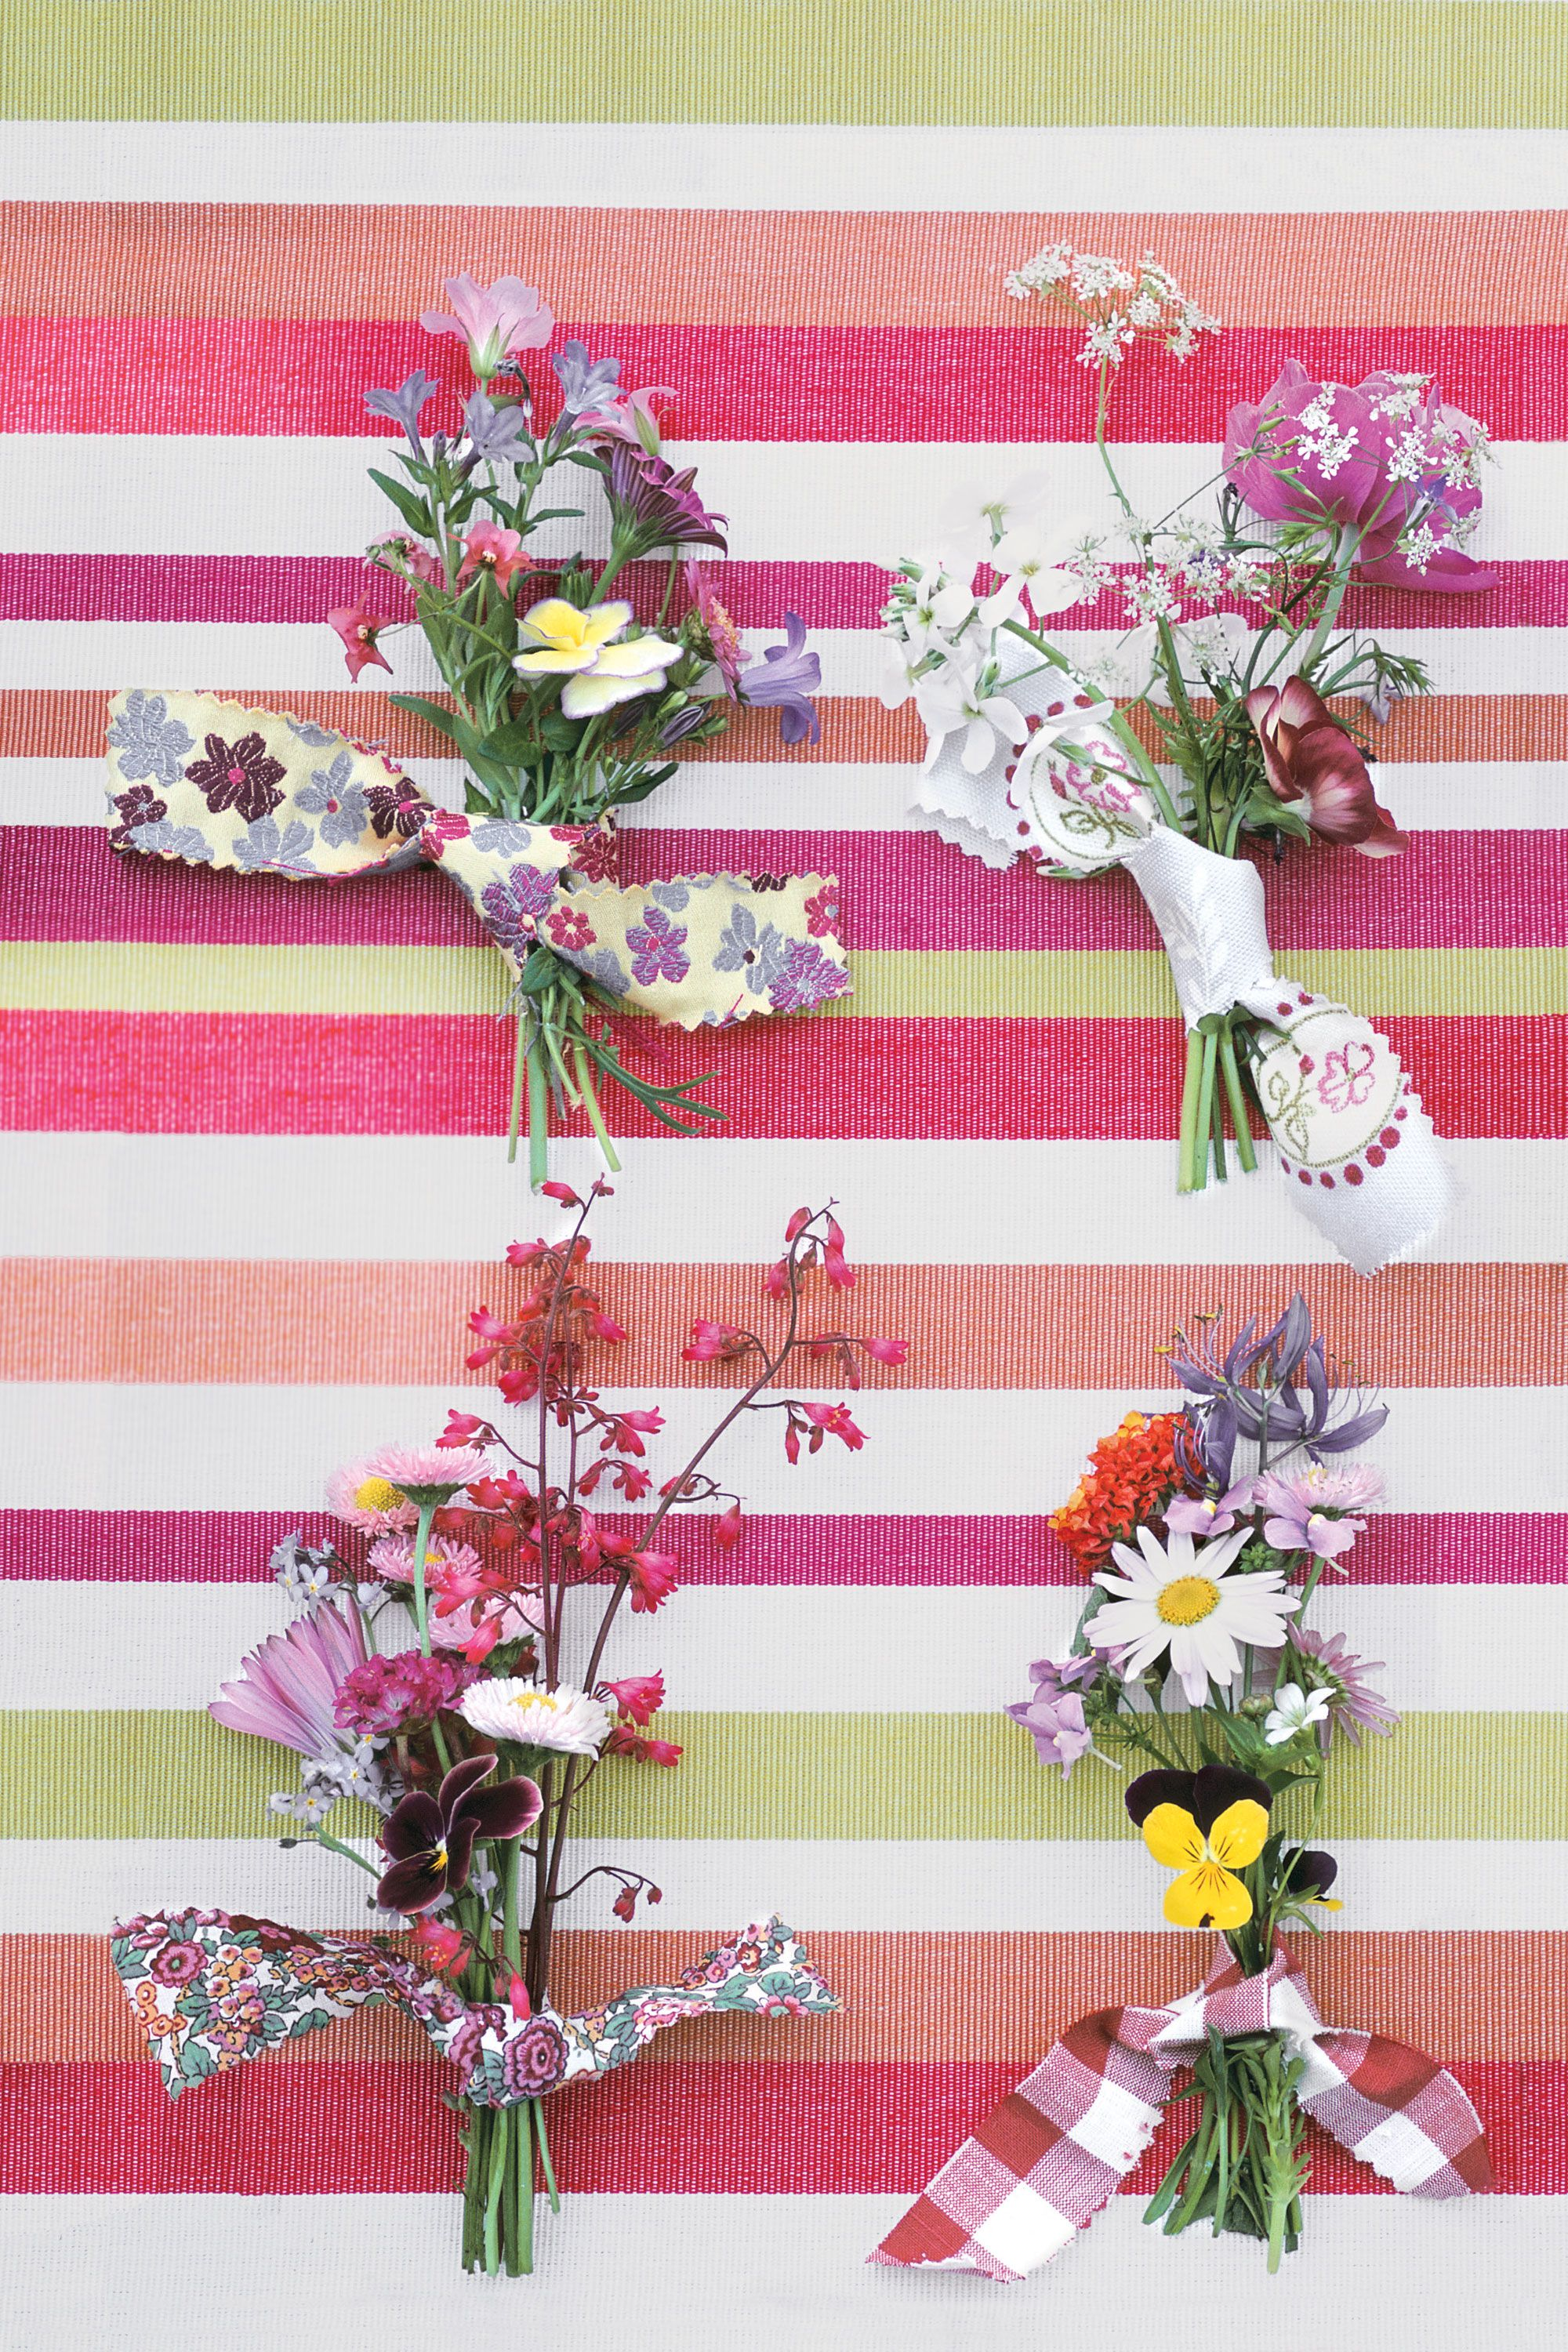 25 Easy Flower Crafts - Ideas for Craft Projects with Flowers